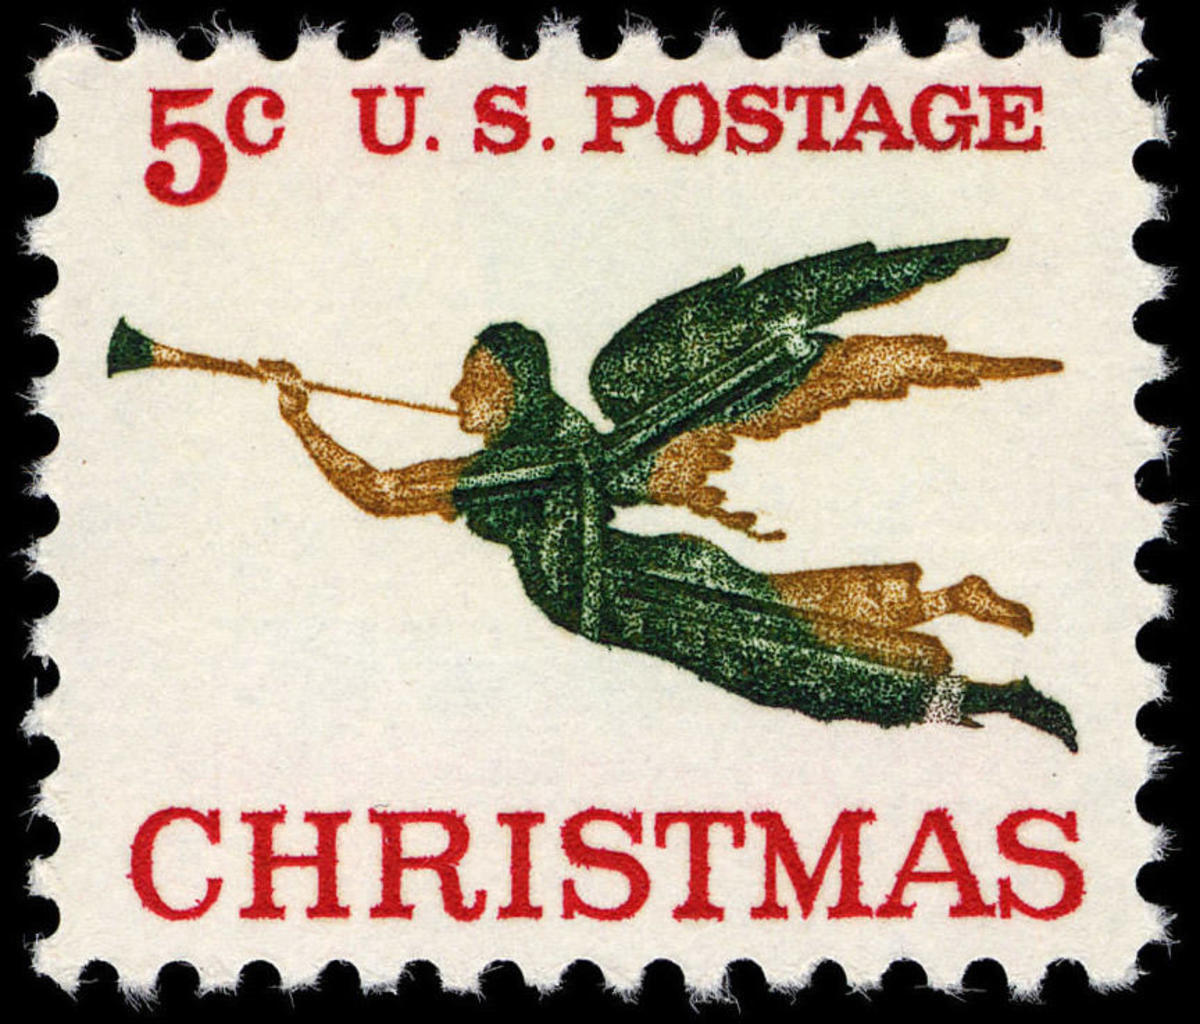 1965 Christmas stamp. (Credit:Public Domain)